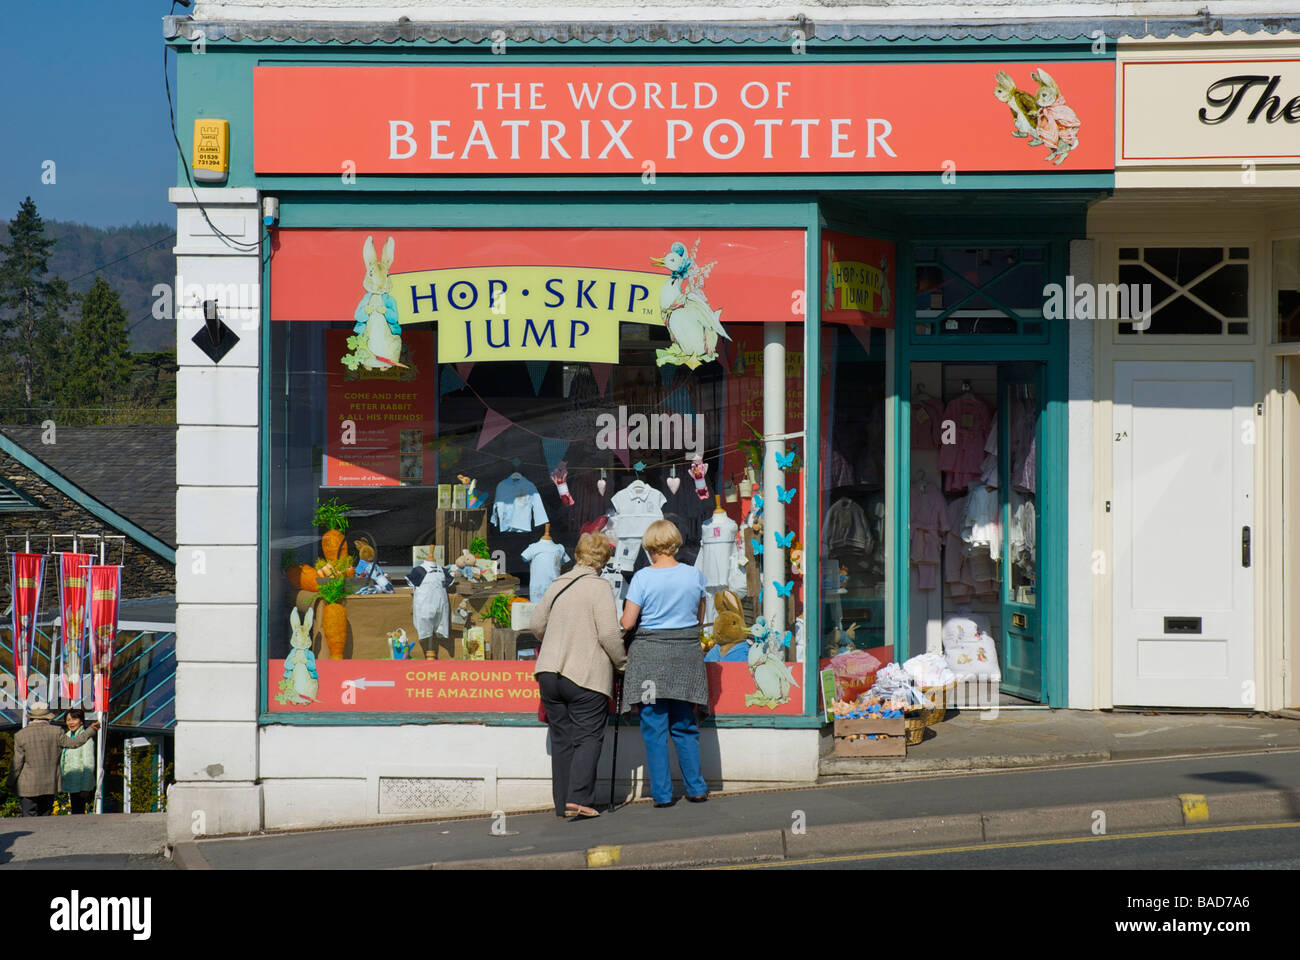 The World of Beatrix Potter, a shop in Bowness-on-Windermere, Lake District National Park, Cumbria, England UK - Stock Image